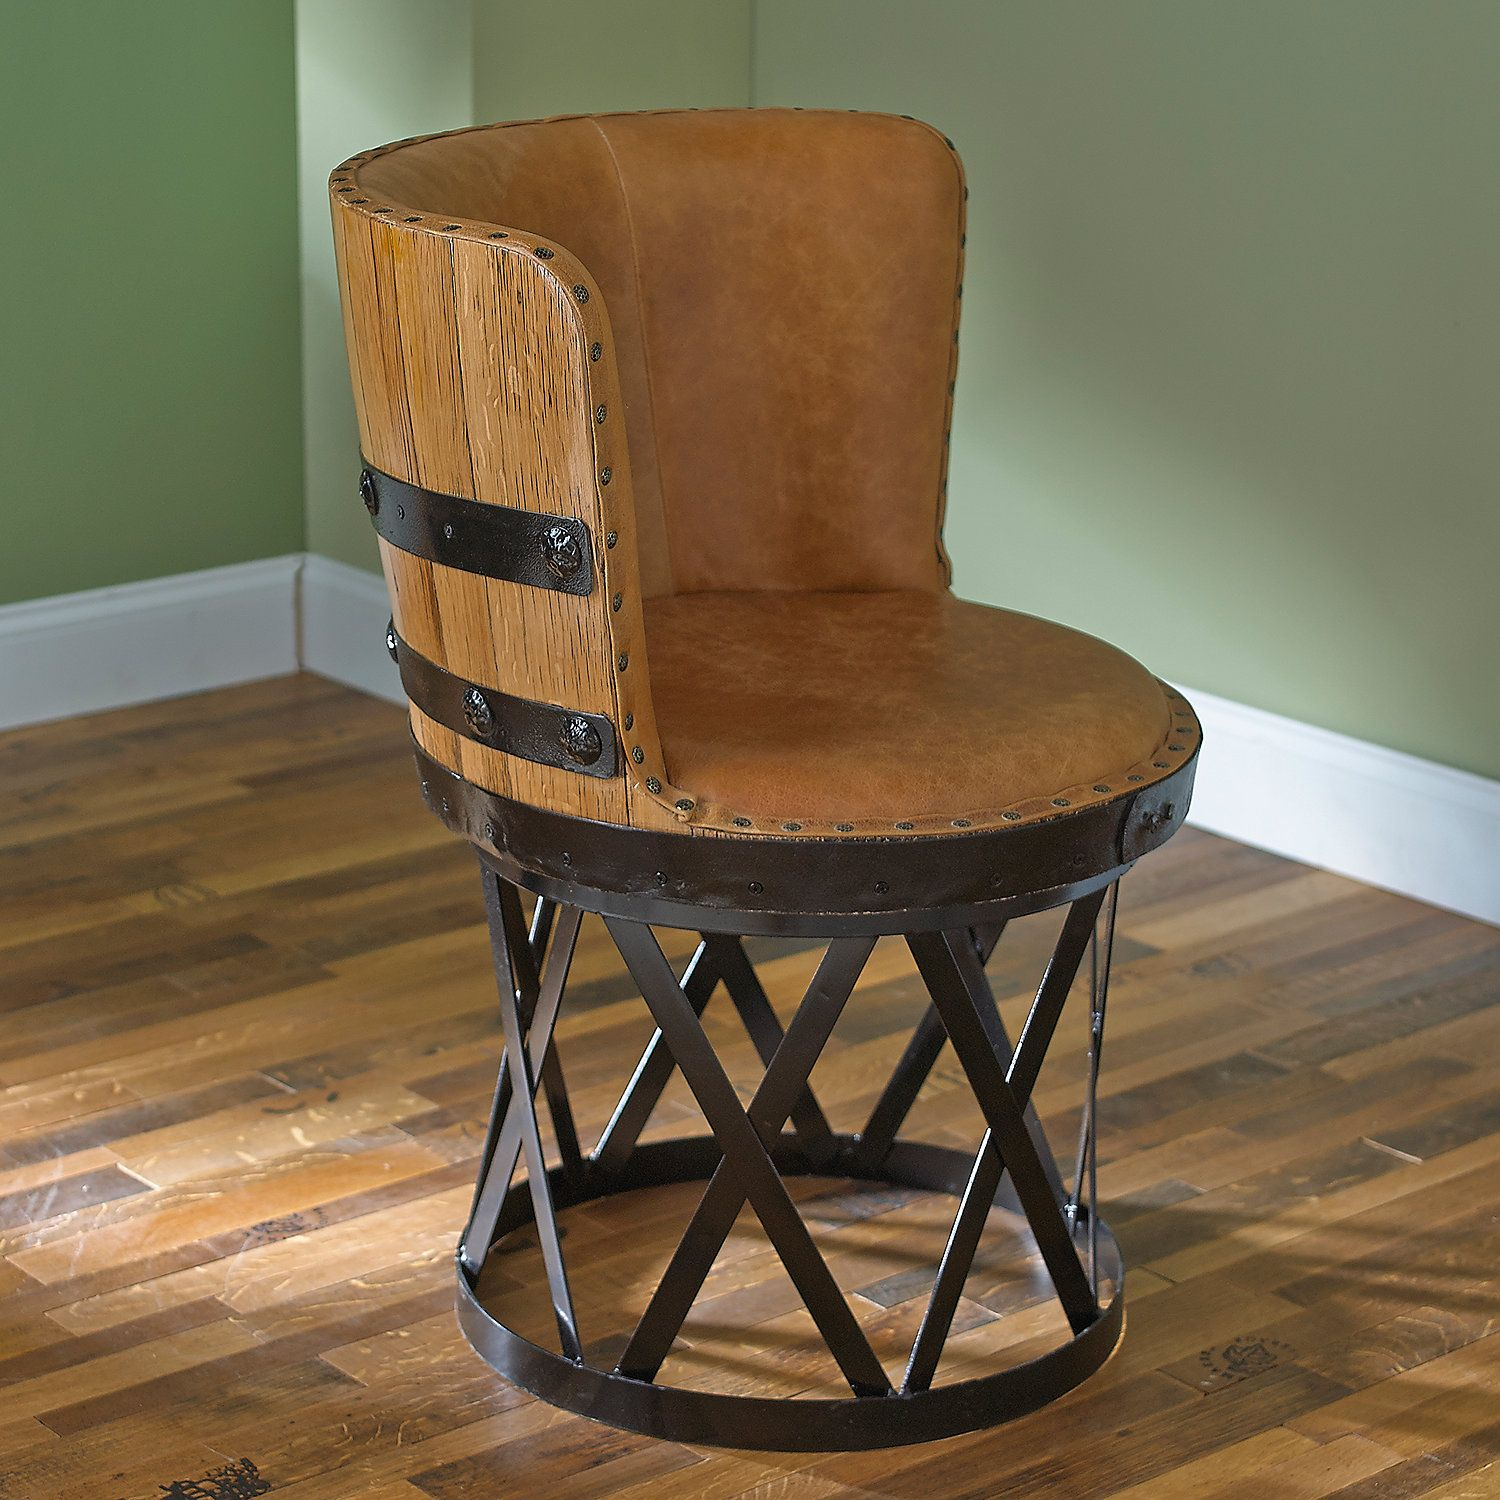 Barrel Table And Chairs For Sale: 135 Wine Barrel Furniture Ideas You Can DIY Or BUY [PHOTOS